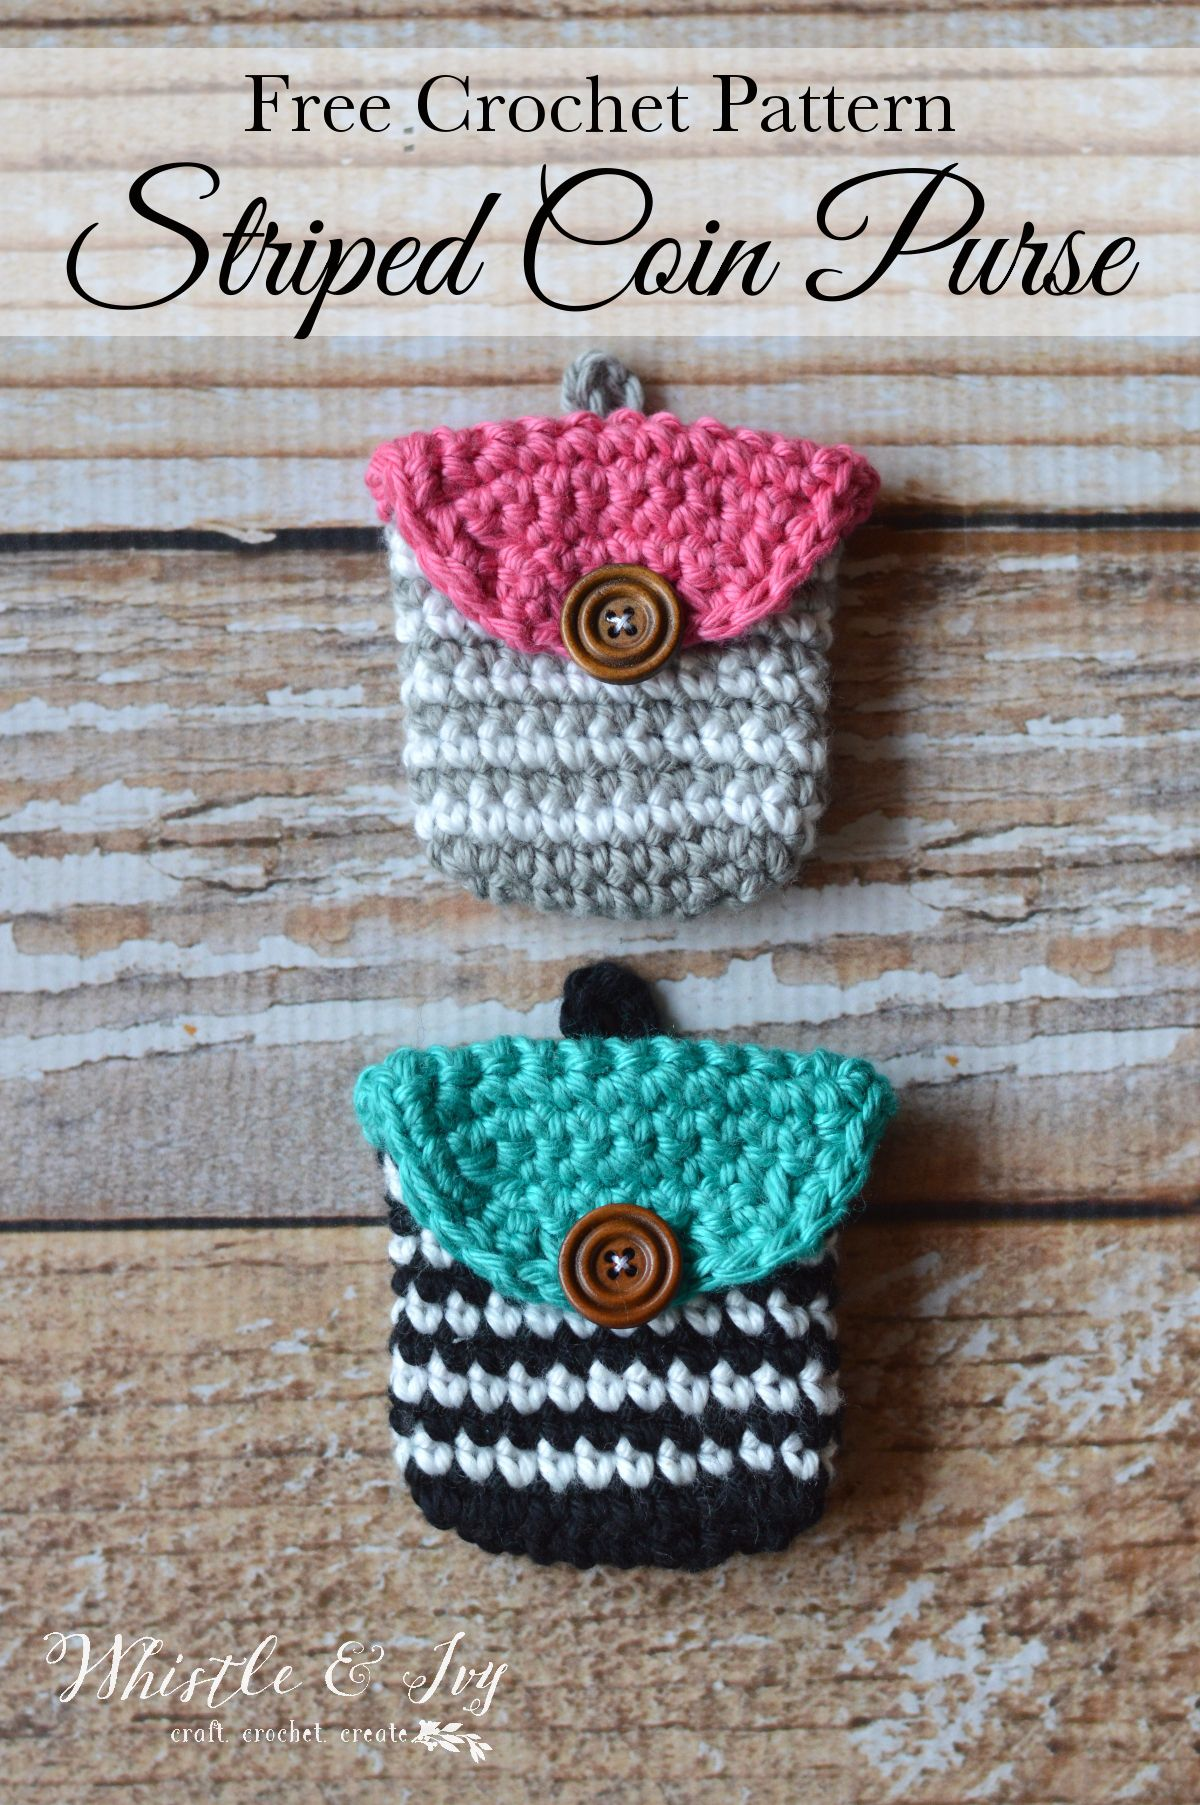 Crochet Striped Coin Purse | Pinterest | Key rings, Coins and Free ...